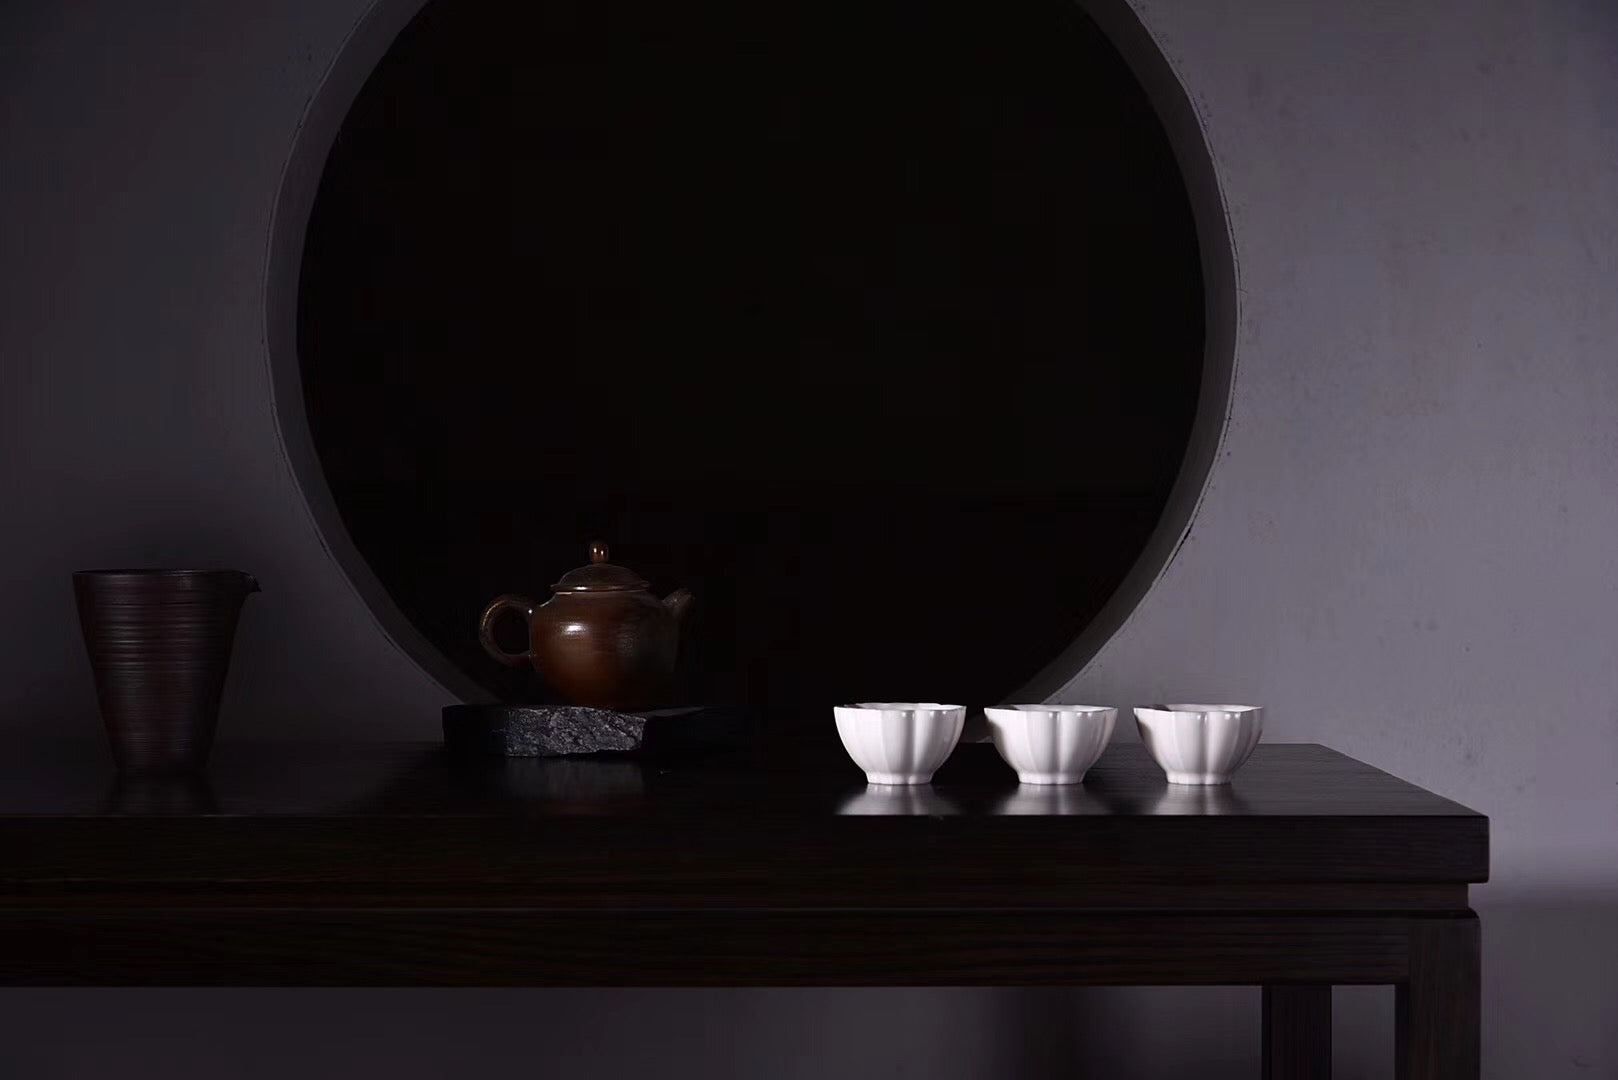 Teacups With Ming Antiques Style Chinese Traditional Cup|Best Ceramics